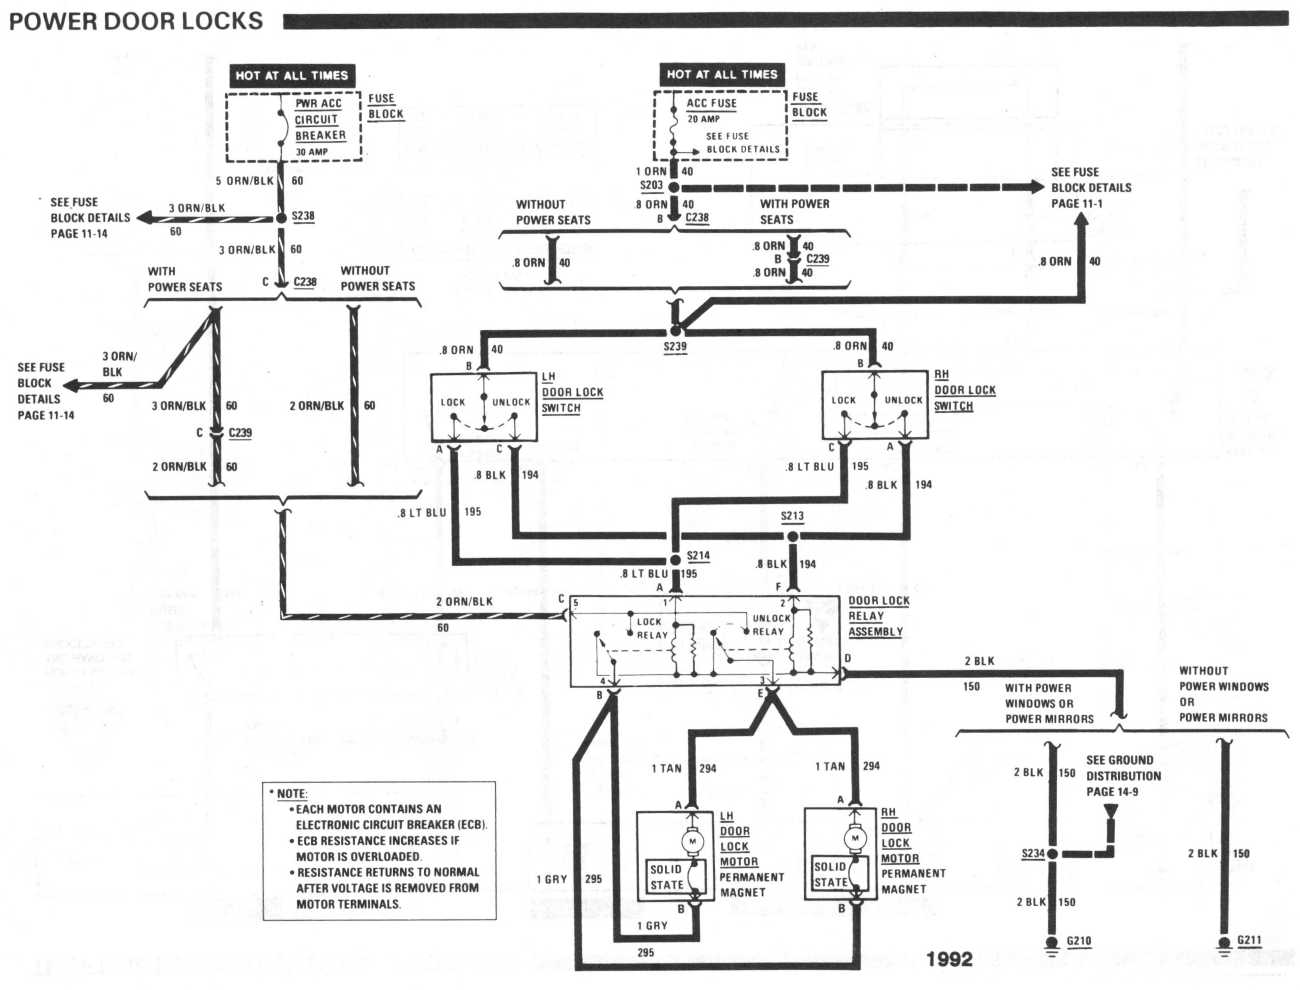 [WRG-5951] 09 F150 Door Lock Relay Wiring Diagram